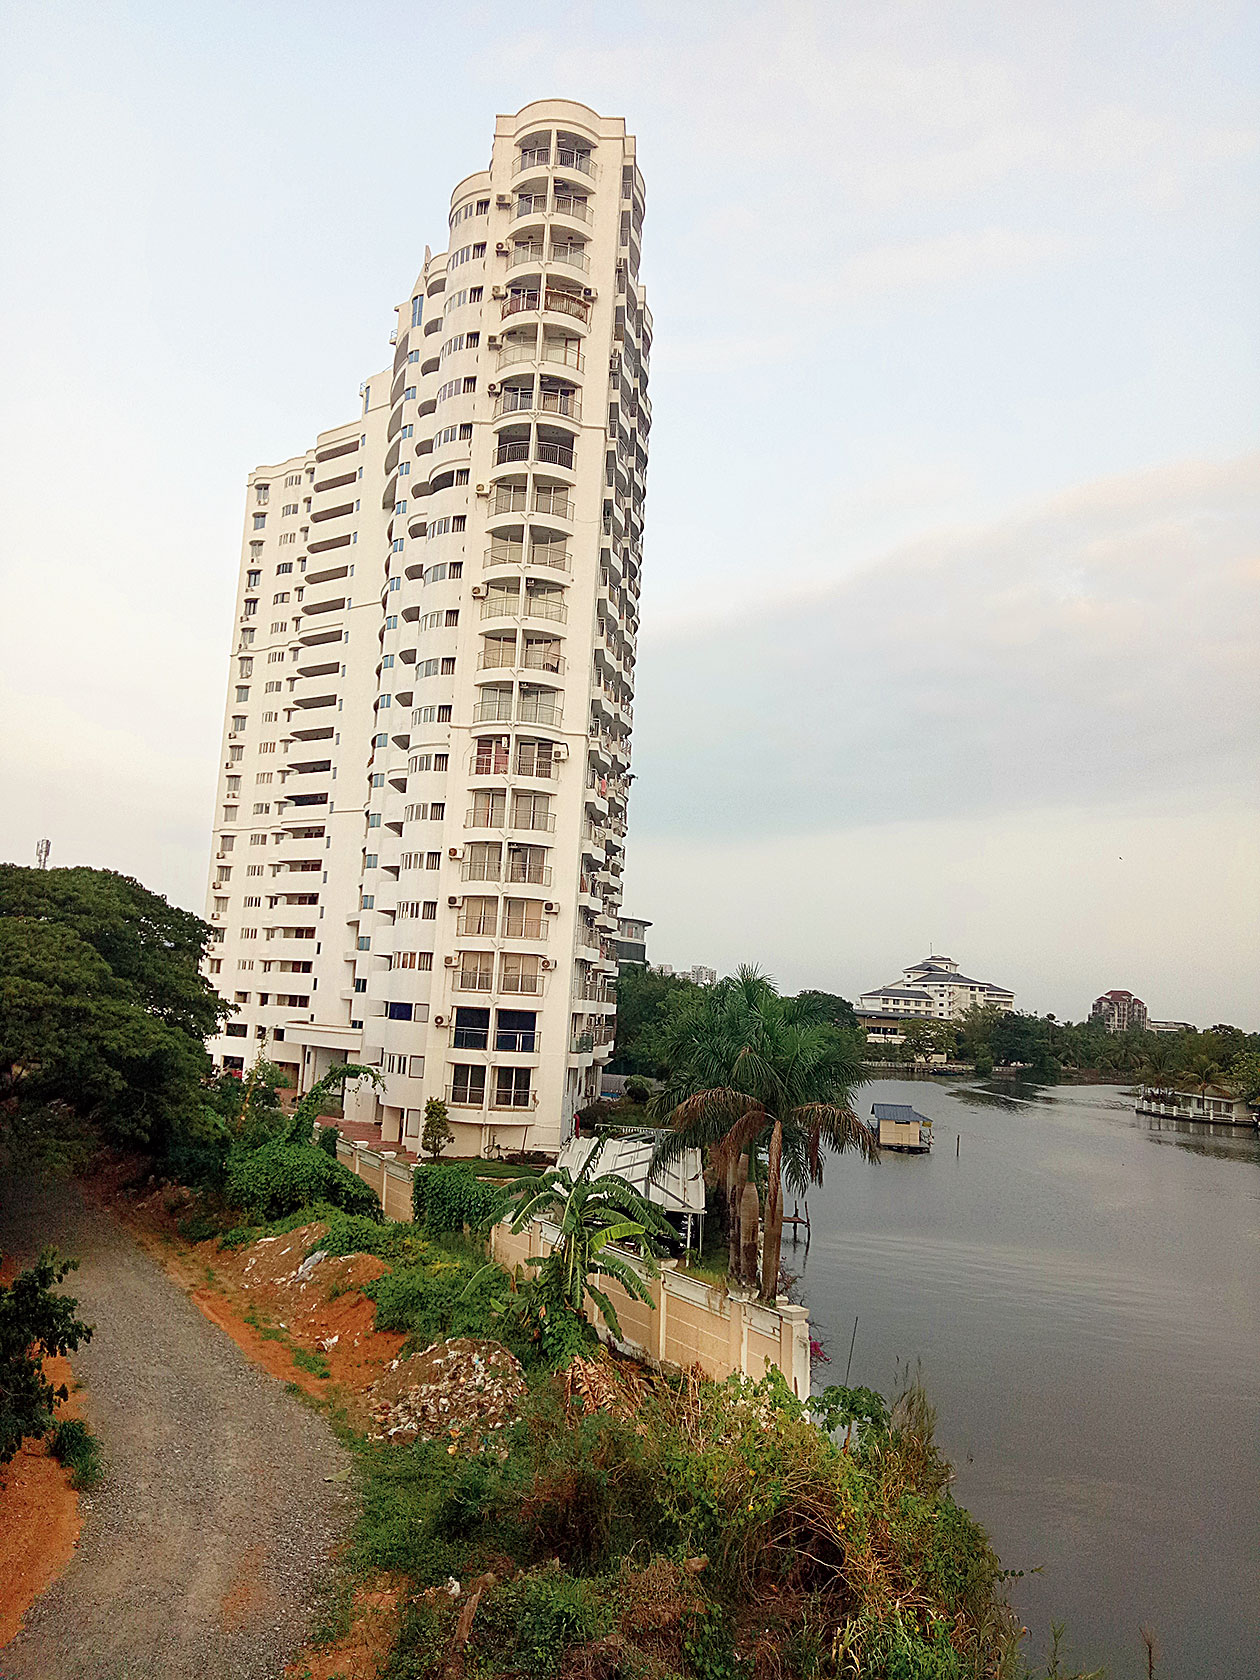 One of the apartment complexes awaiting demolition in Maradu, Kochi